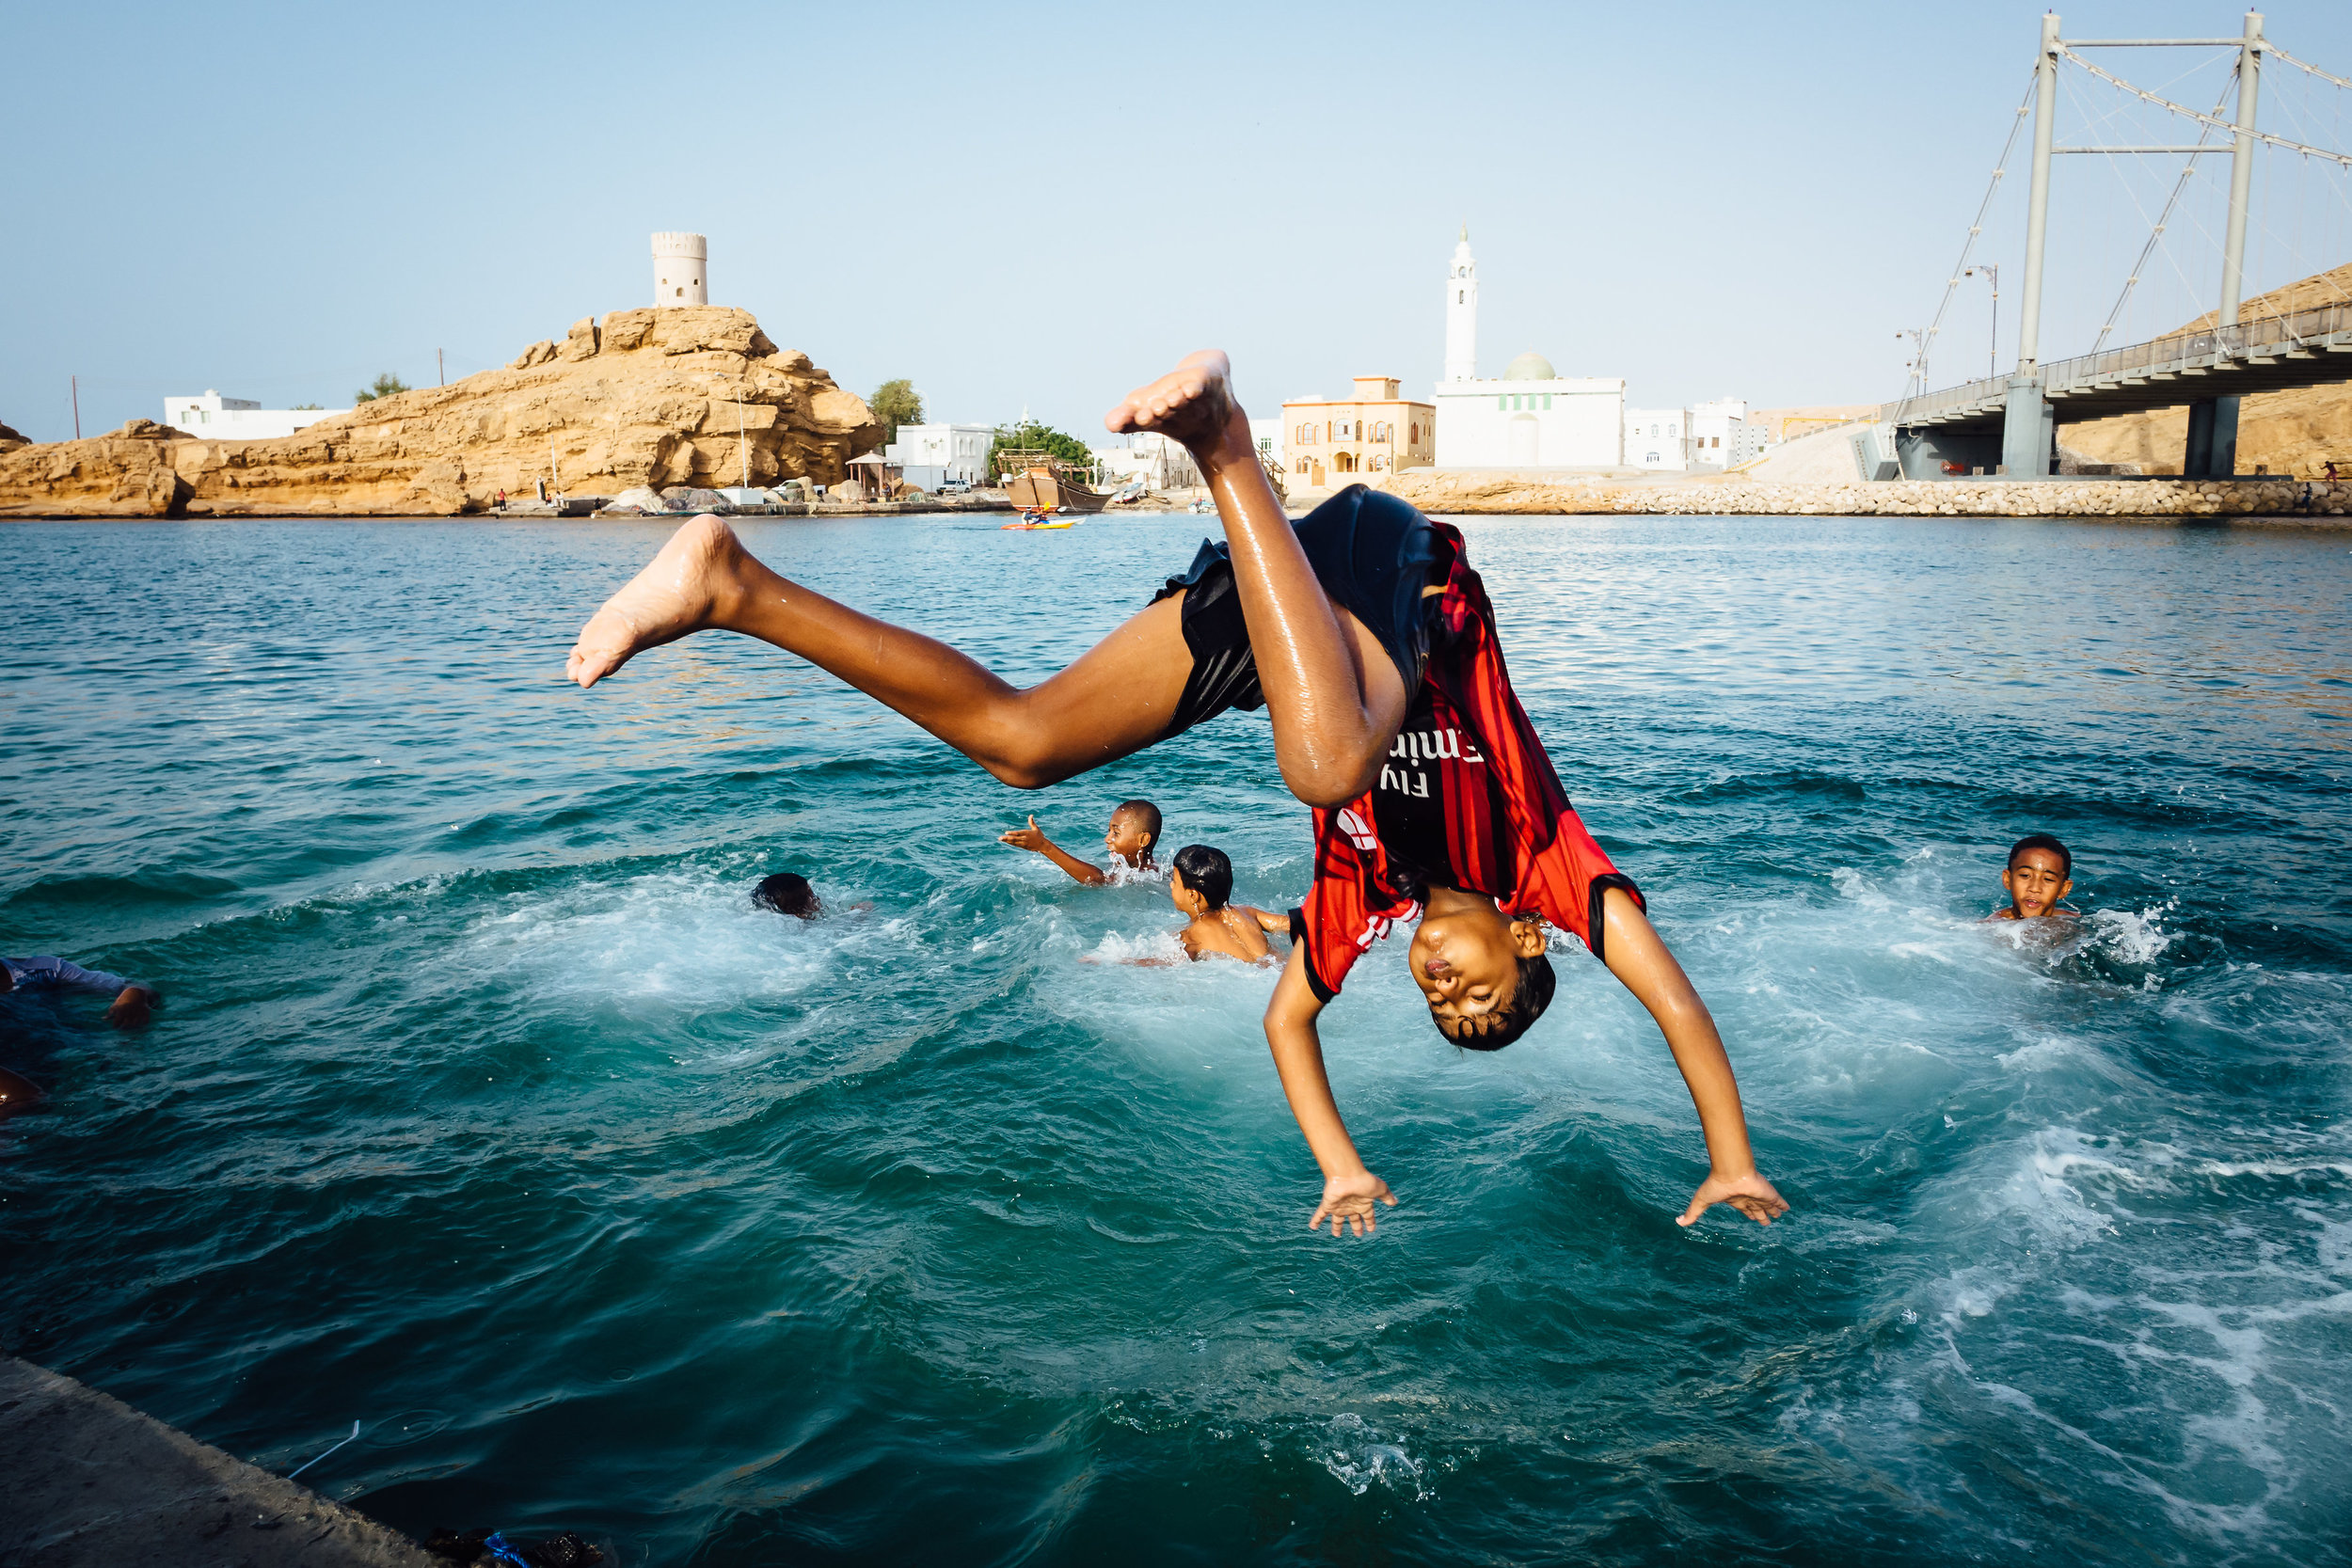 A boy dives off a dock into the cool waters of the ship-building village of Sur.